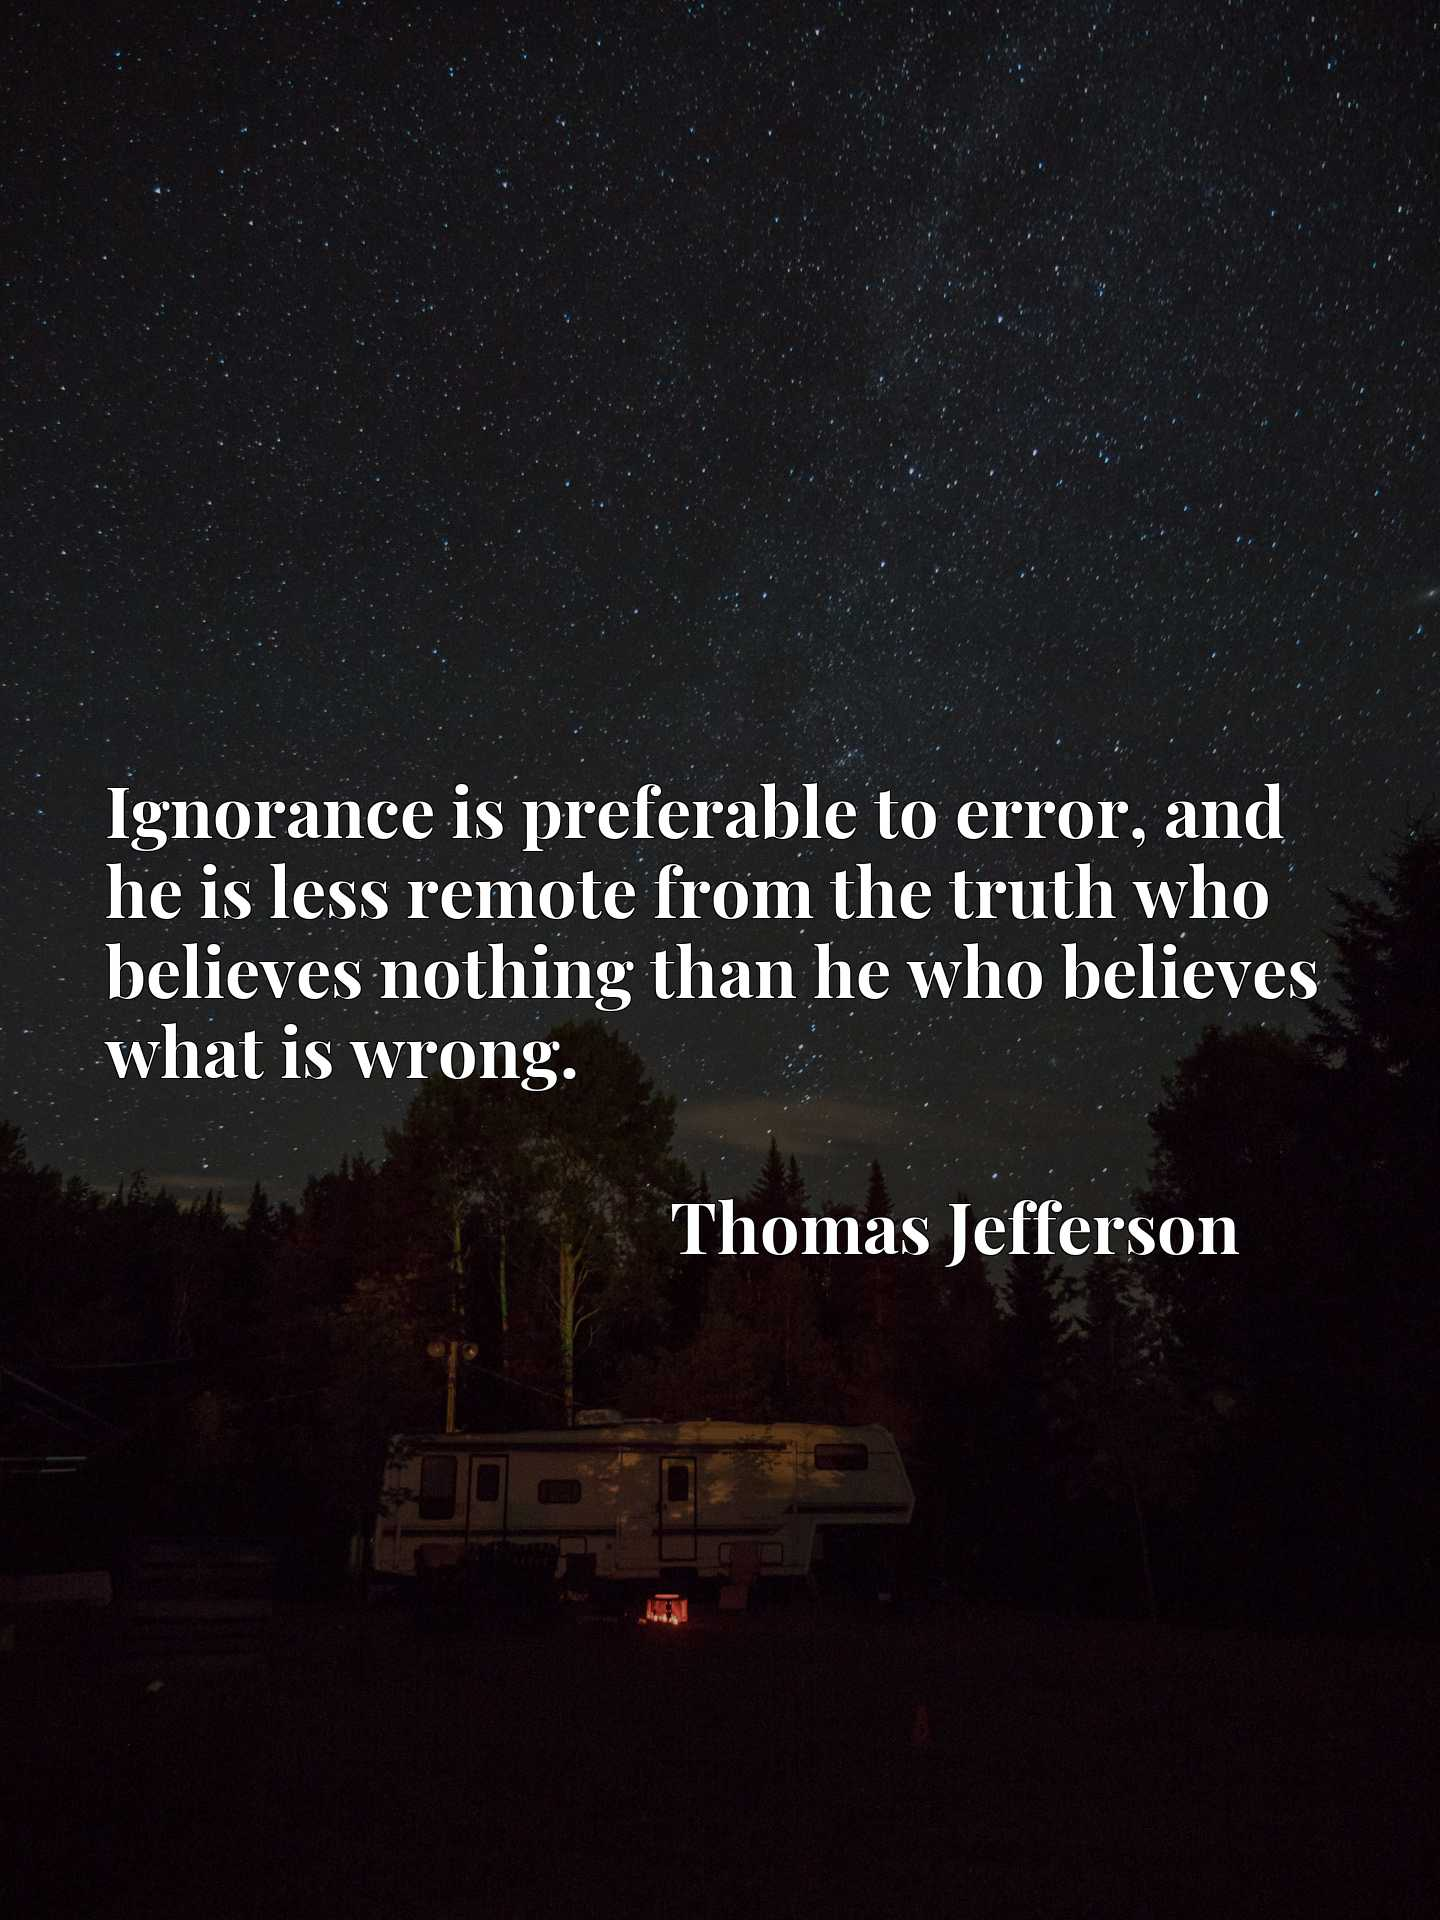 Ignorance is preferable to error, and he is less remote from the truth who believes nothing than he who believes what is wrong.